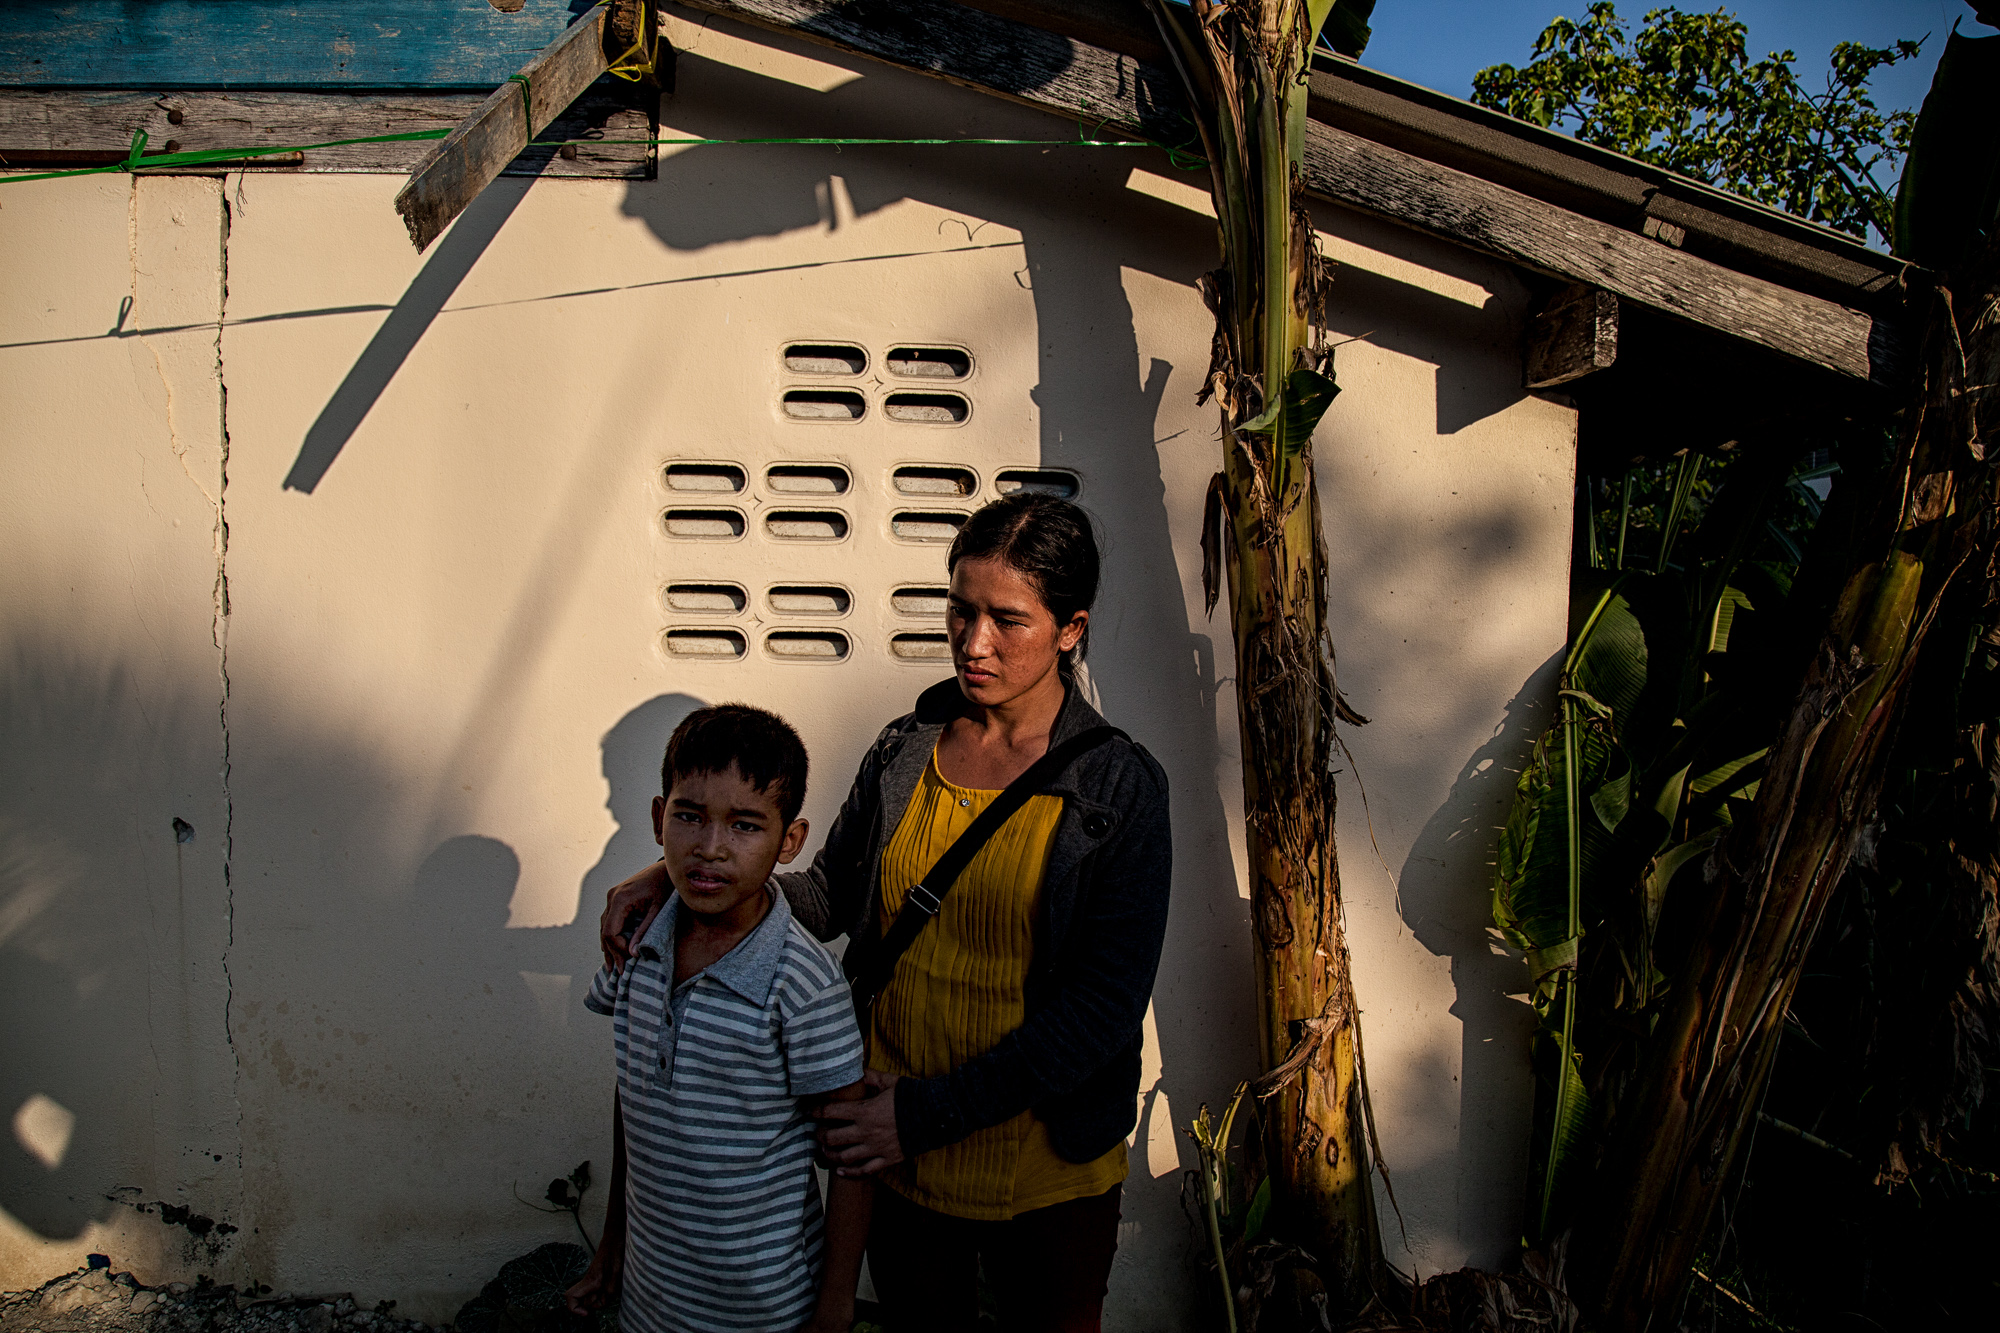 """Rhma Din, 27 year old with her son in Bangkok, Thailand, Feb. 4, 2017. A Vietnamese Montagnard now living in Bangkok. She escaped religious persecution, land grabbing and arbitrary arrests at the hands of the Vietnamese police. Persecuted because of their religion (they are Christian), the Montagnard community of the Central Highlands are often beaten, imprisoned and jailed. When her youngest son was kidnapped, she asked the police to investigate and they told her: """"You are a Christian so why don't you pray your God, surely he can help you now."""" A few weeks later, her son's body was discovered by the river. The perpetrators were never found. She escaped Vietnam in September 2016 after the authorities issued an arrest warrant claiming she had destroyed and burned the land that she was working on. She is in Bangkok today with her oldest son and husband living as refugees with no papers, as the Thai government does not recognize refugees. Her future is uncertain"""